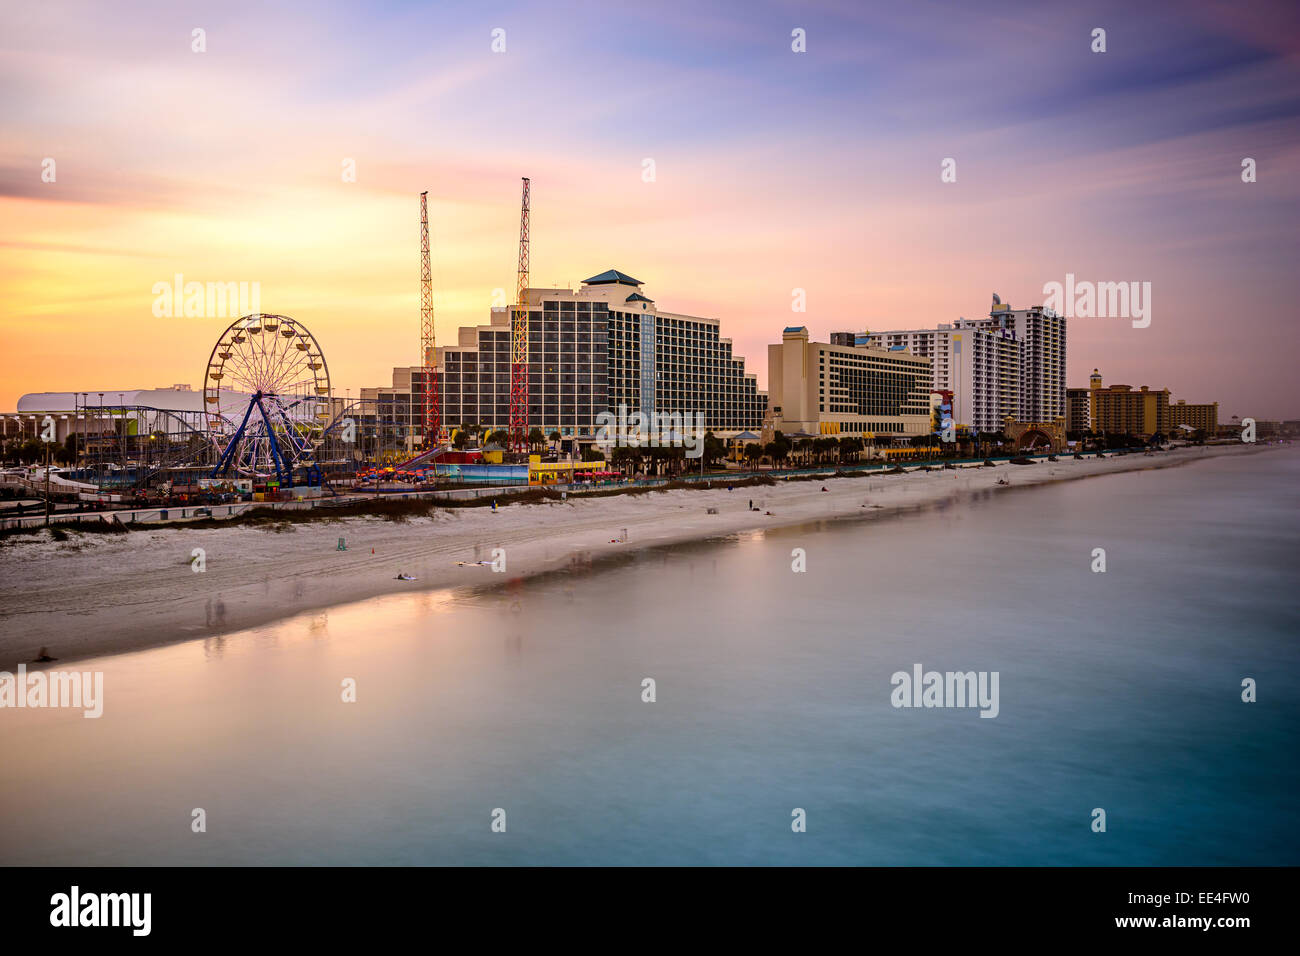 Daytona Beach, Florida, USA beach and resorts cityscape. Stock Photo